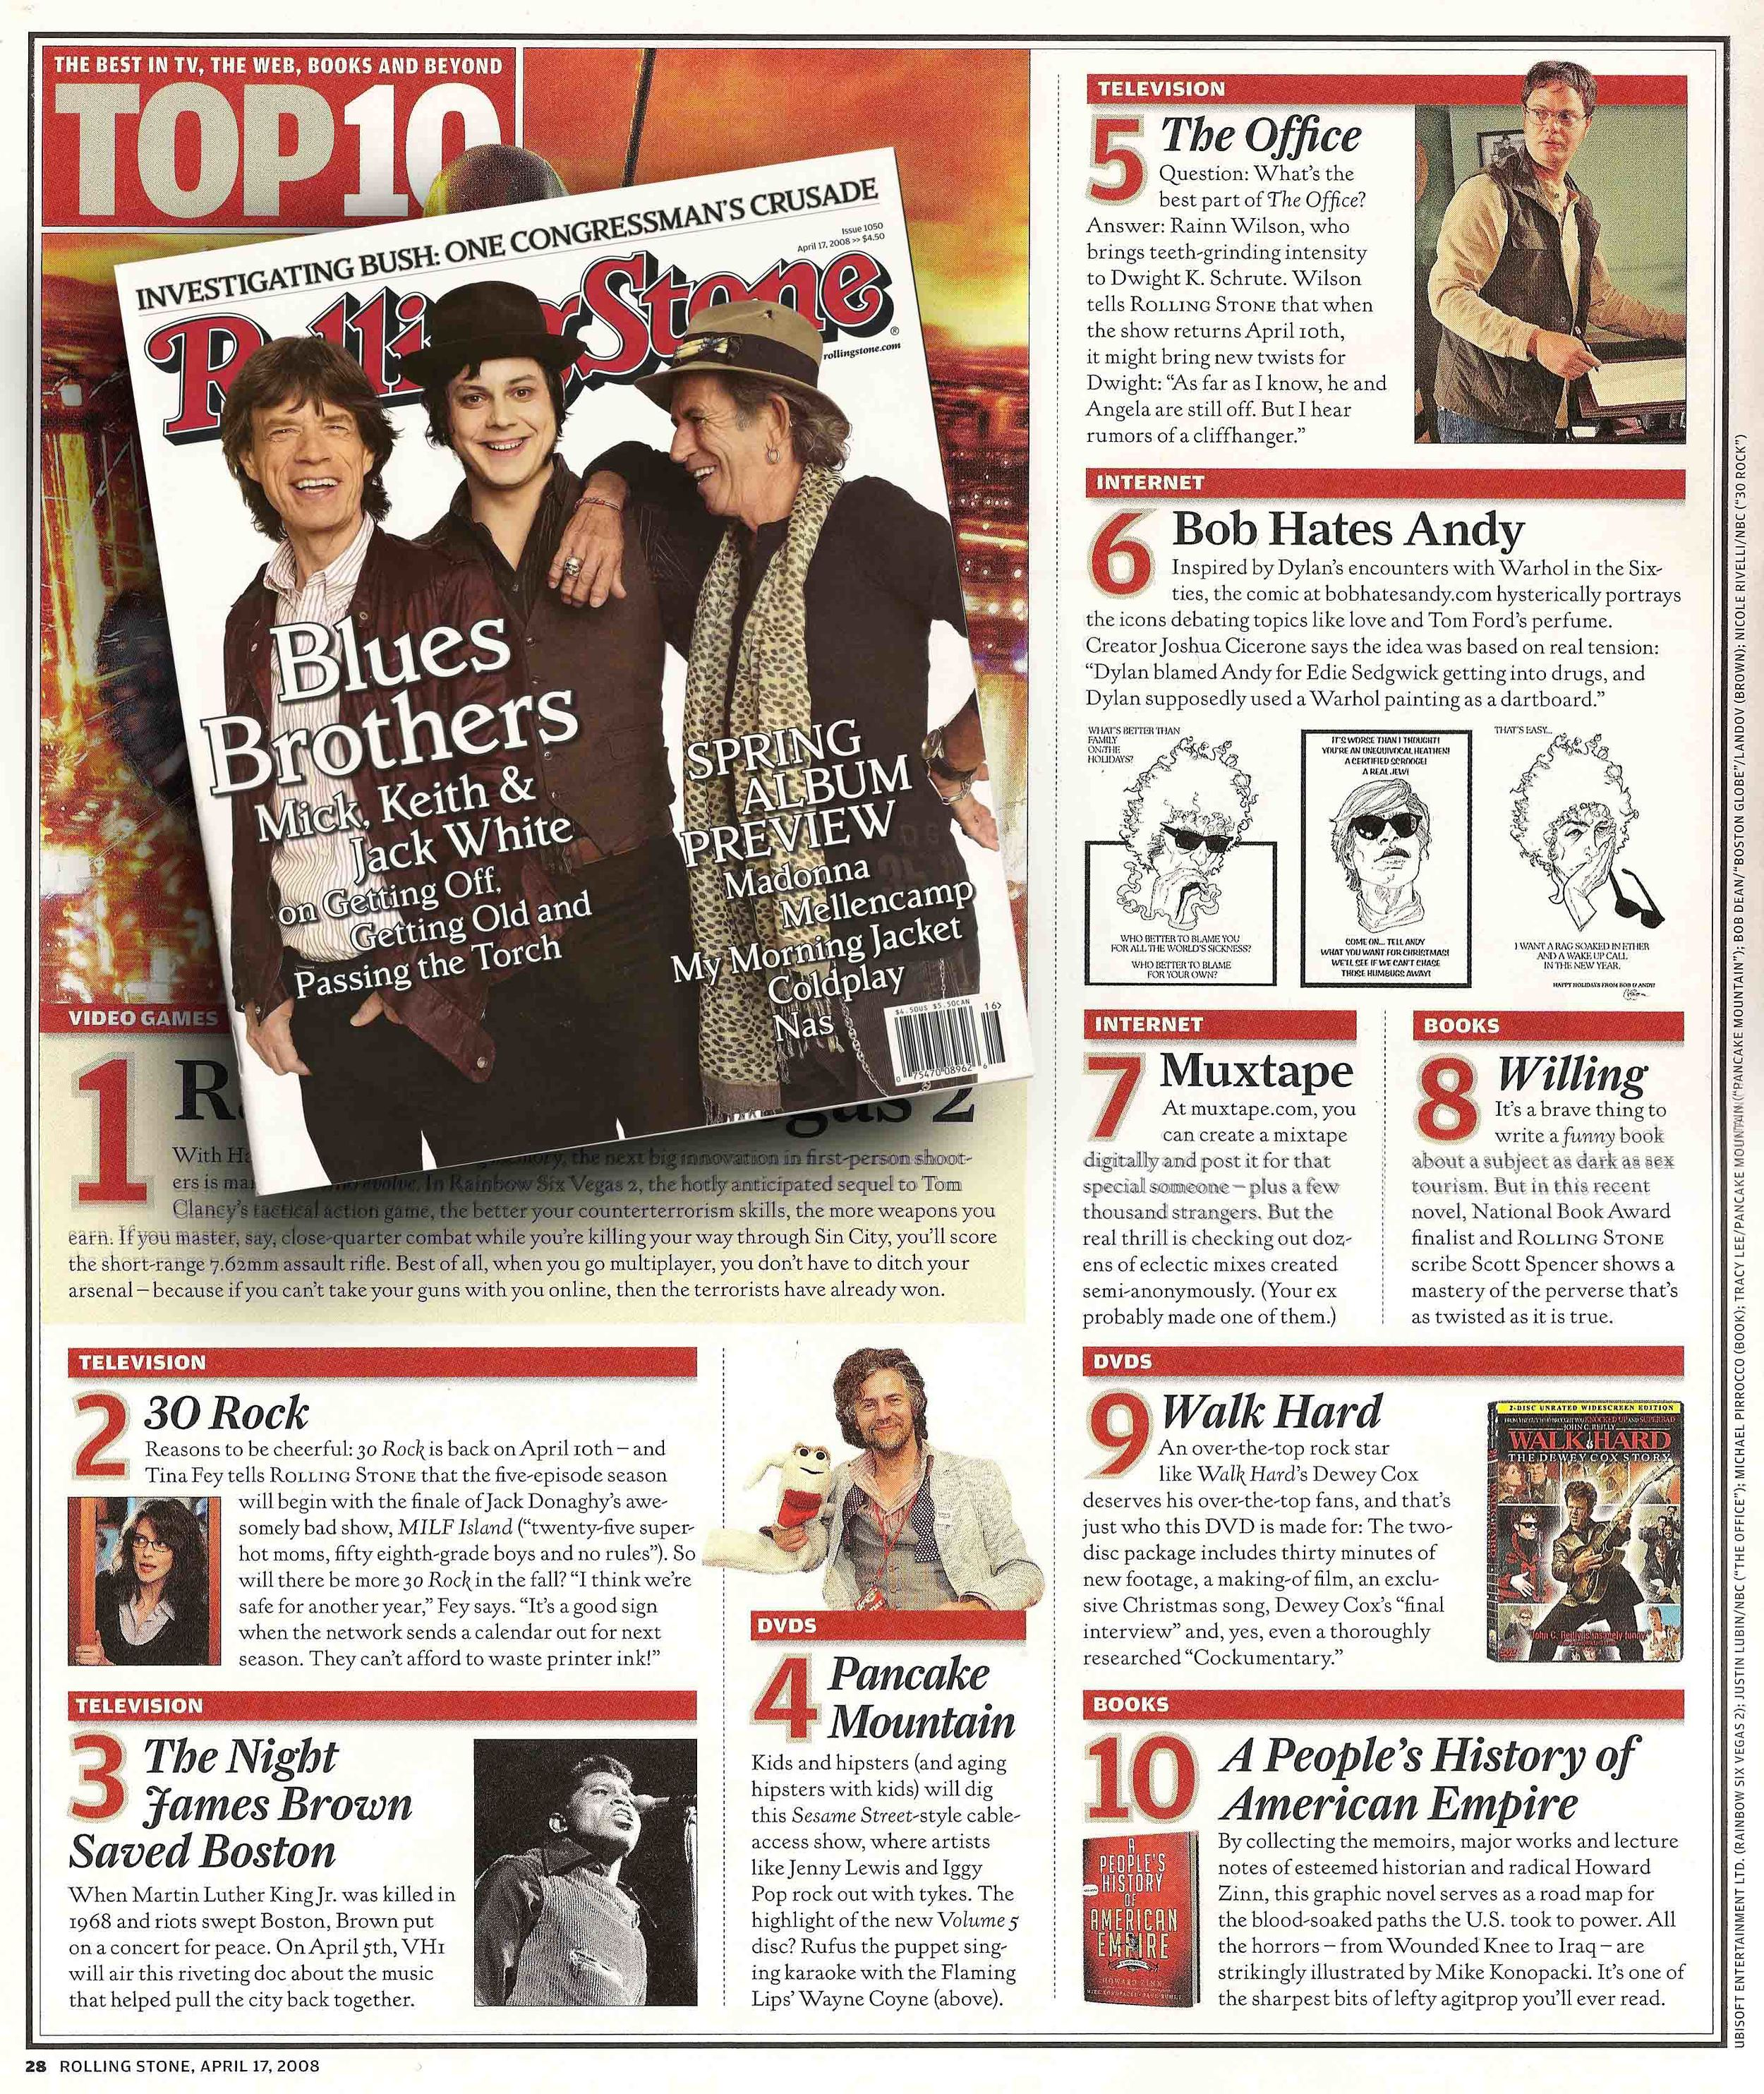 """TOP TEN - THE BEST IN TV, THE WEB, BOOKS AND BEYOND     No. 6: Bob Hates Andy    Inspired by Dylan's encounters with Warhol in he sixties, the comic at bobhatesandy.com hysterically portrays the icons debating topics like love and Tom Ford's perfume. Creator Joshua Cicerone says the whole idea was based on real tension: """"Dylan blamed Andy for Edie Sedgwick getting into drugs, and Dylan supposedly used a Warhol painting as a dartboard.""""     -Rolling Stone Magazine, April 17, 2008"""